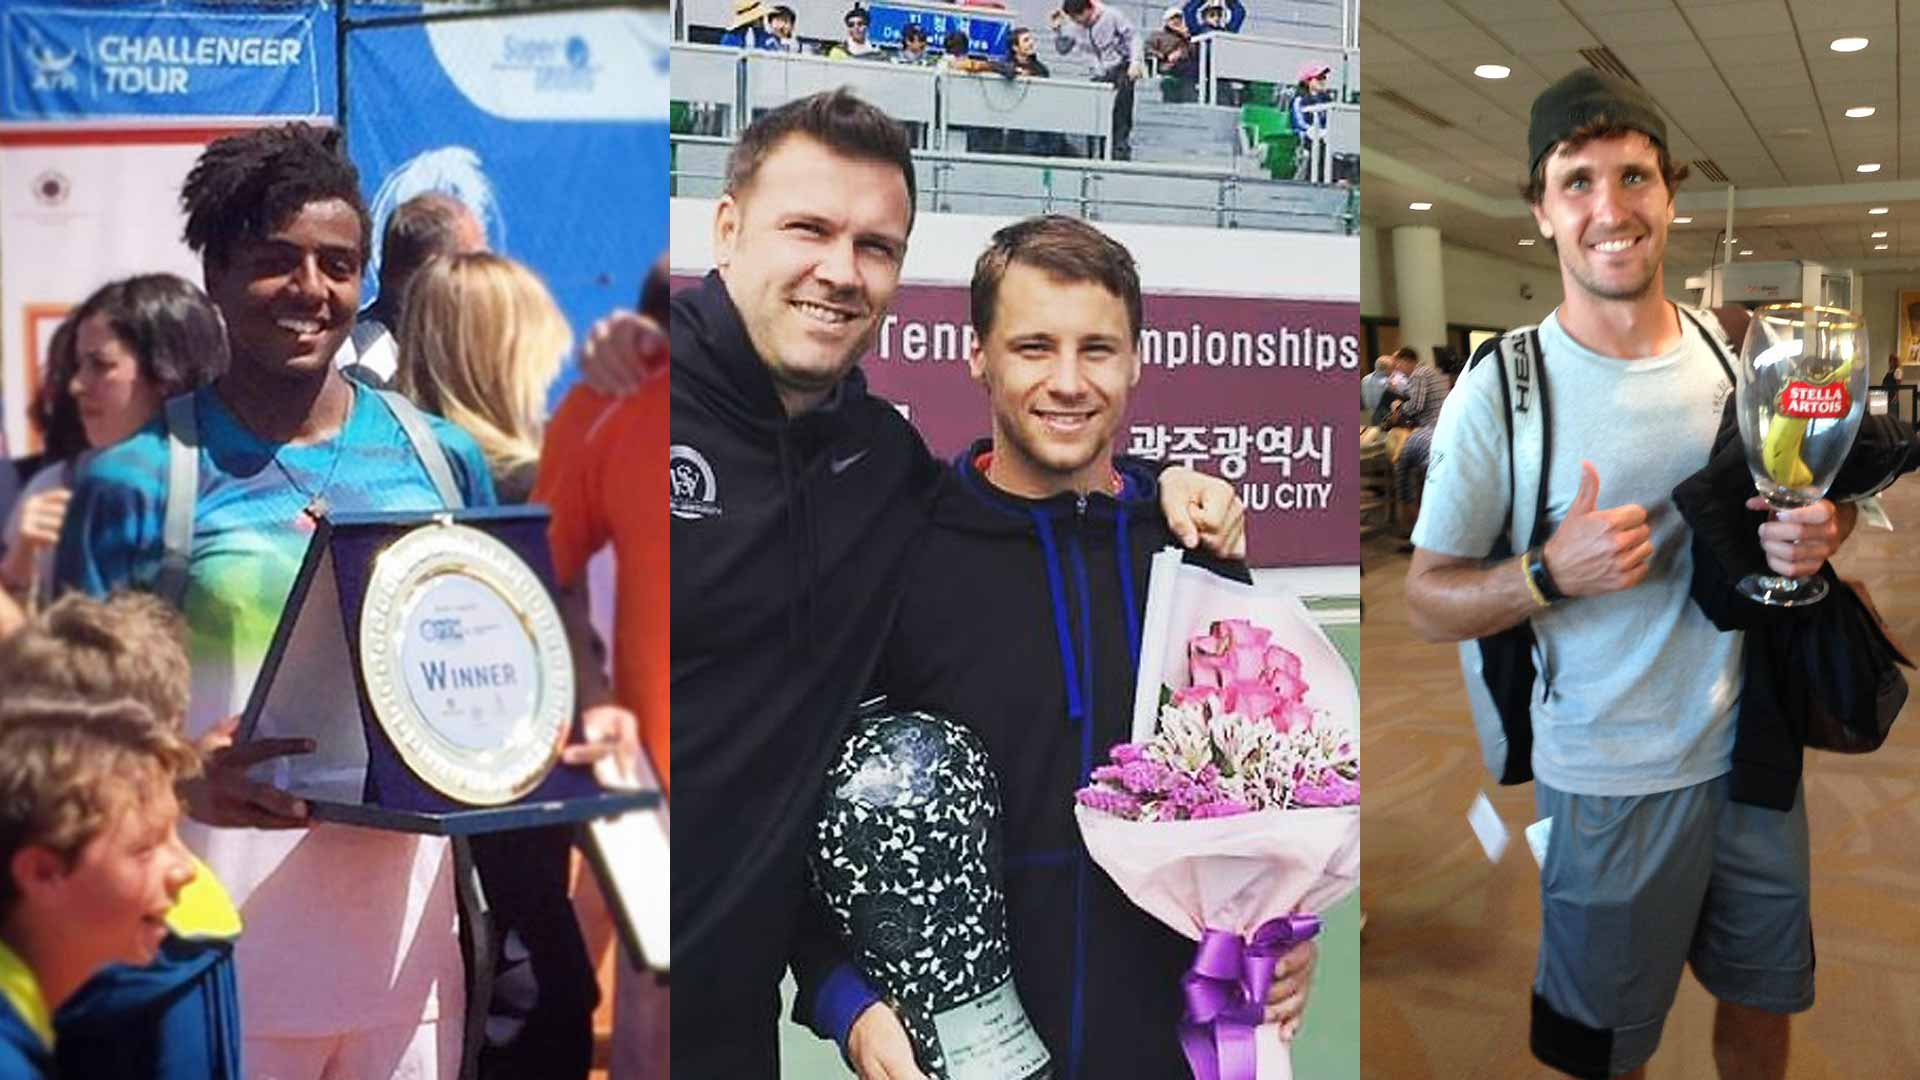 Elias Ymer, Ricardas Berankis and Mischa Zverev all captured titles this week on the ATP Challenger Tour.